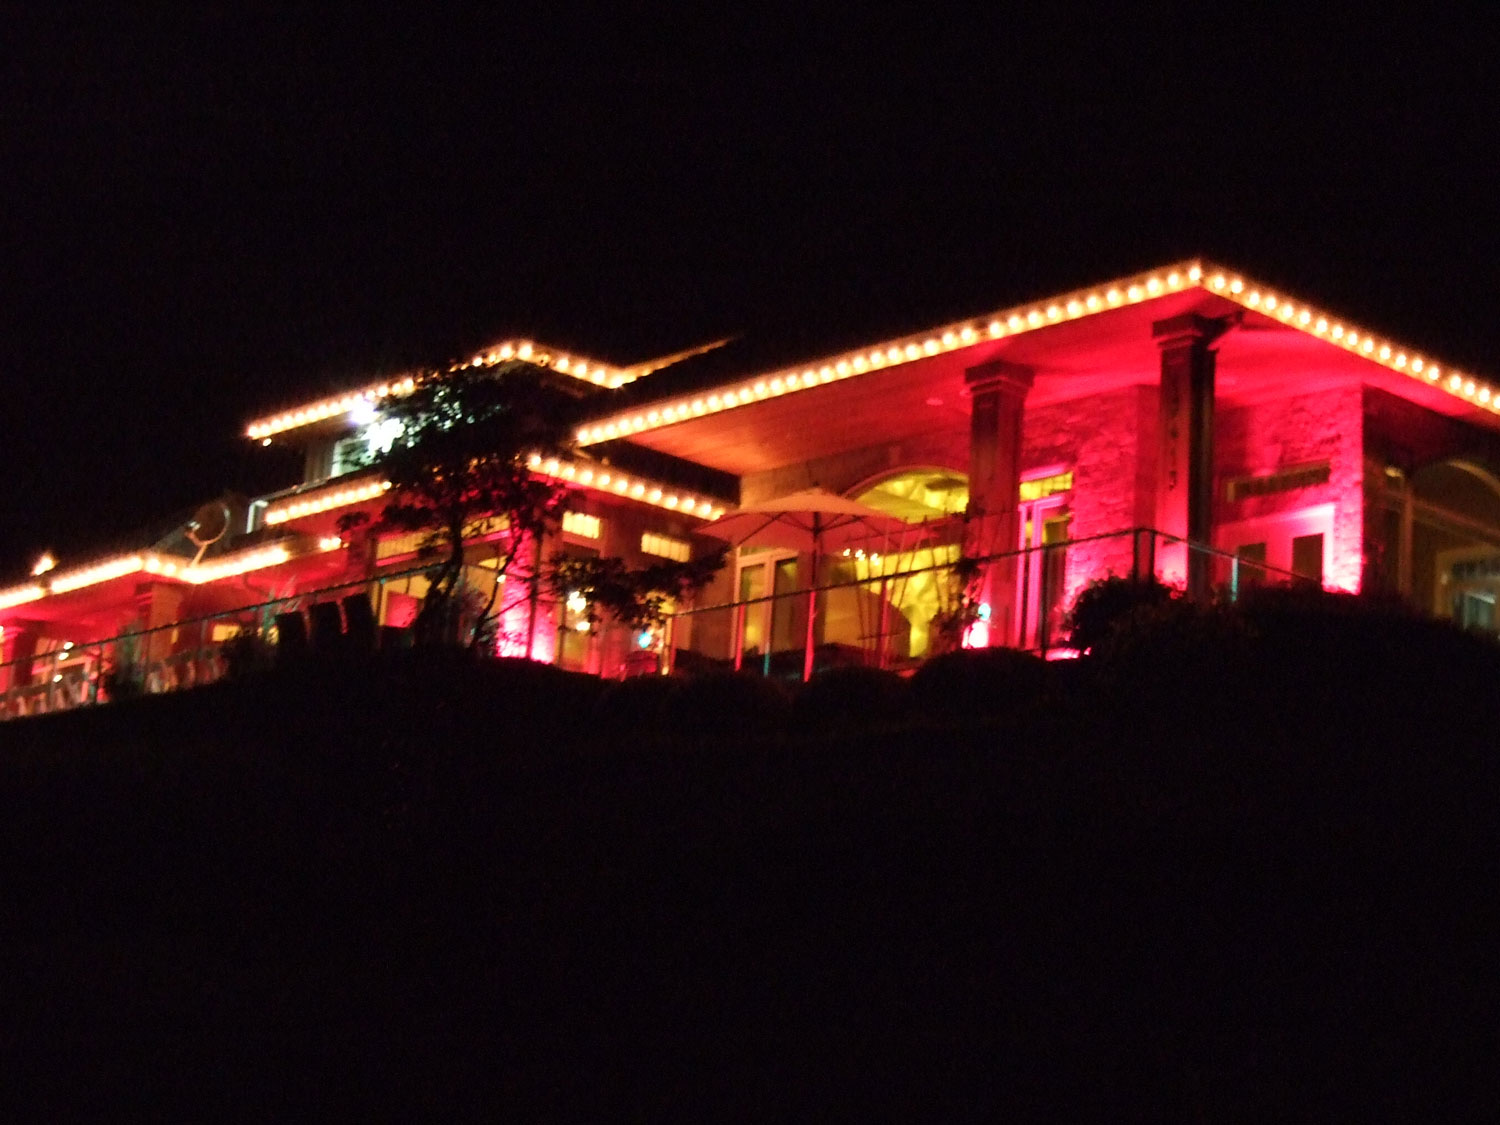 House Party Exterior Ambience Lighting - indian wedding house decorations - indian wedding house lighting